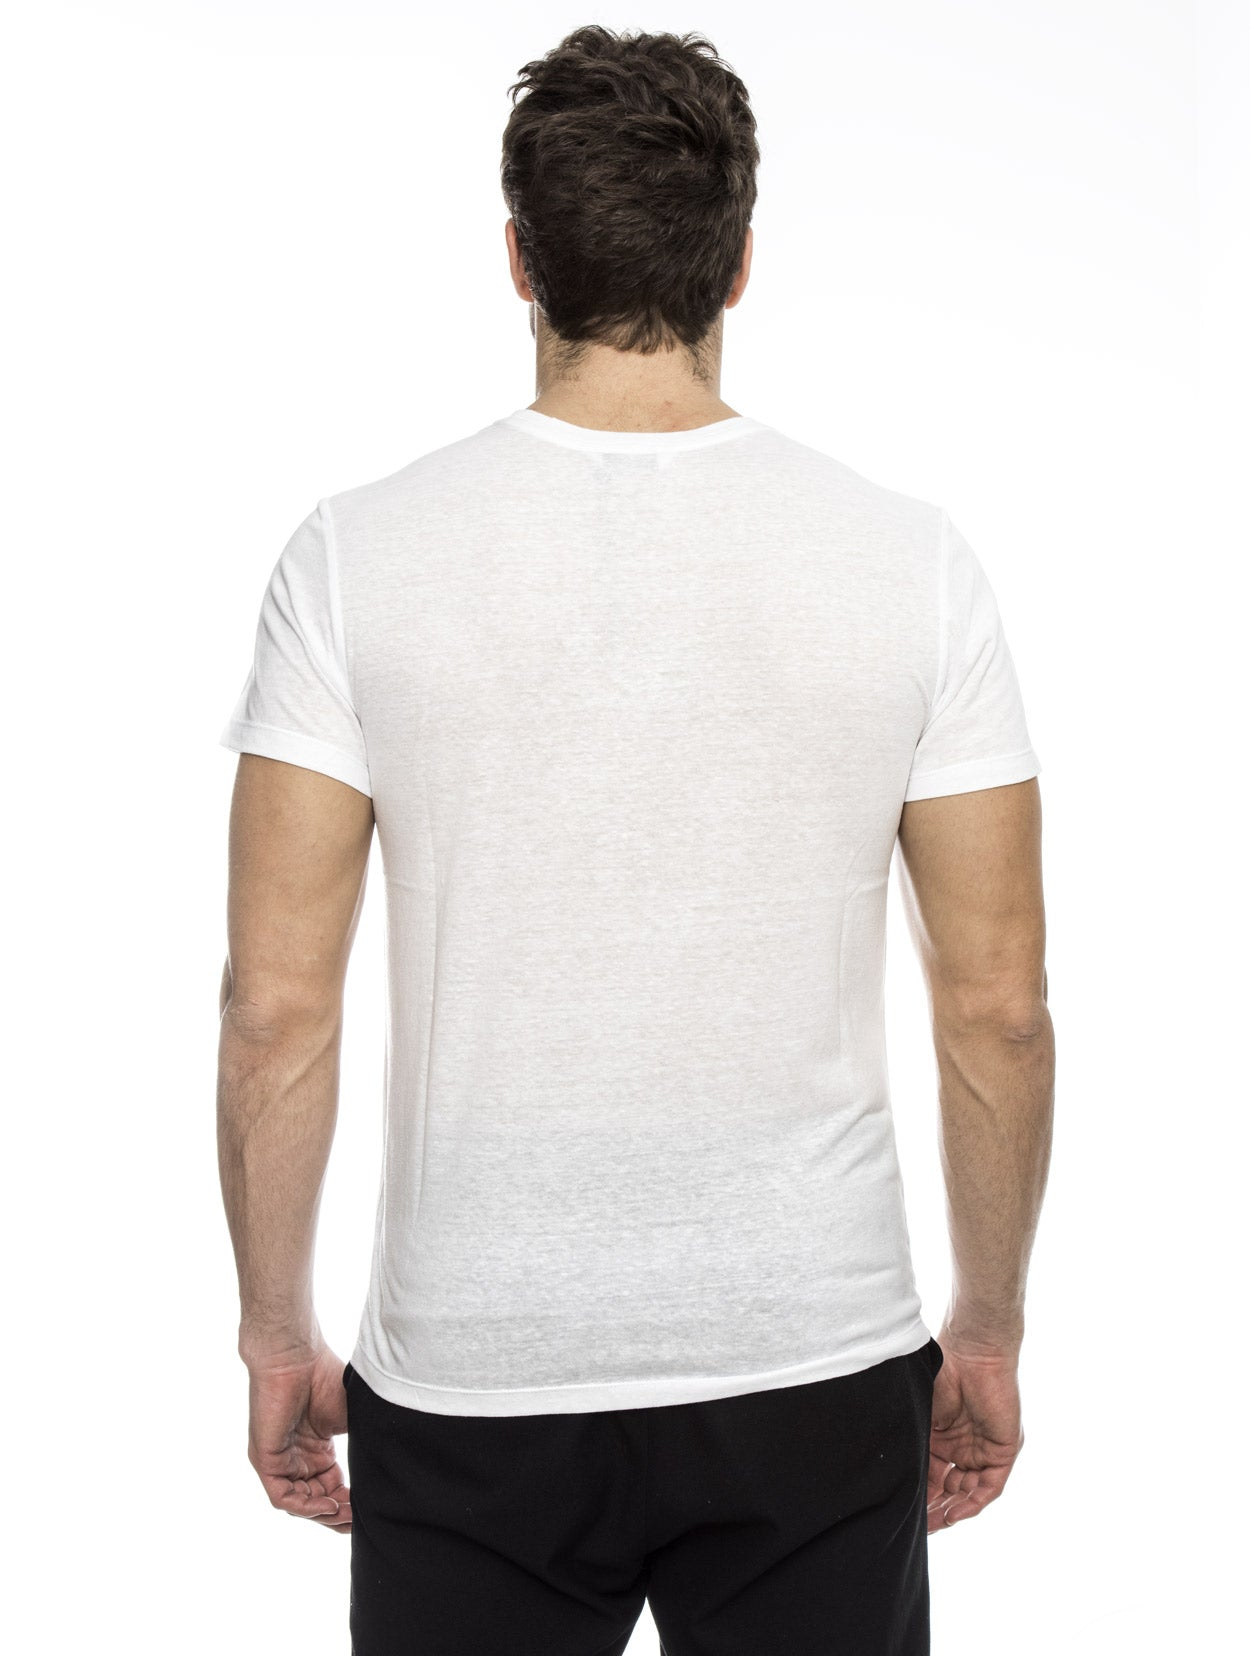 ARTY T-SHIRT IN WHITE